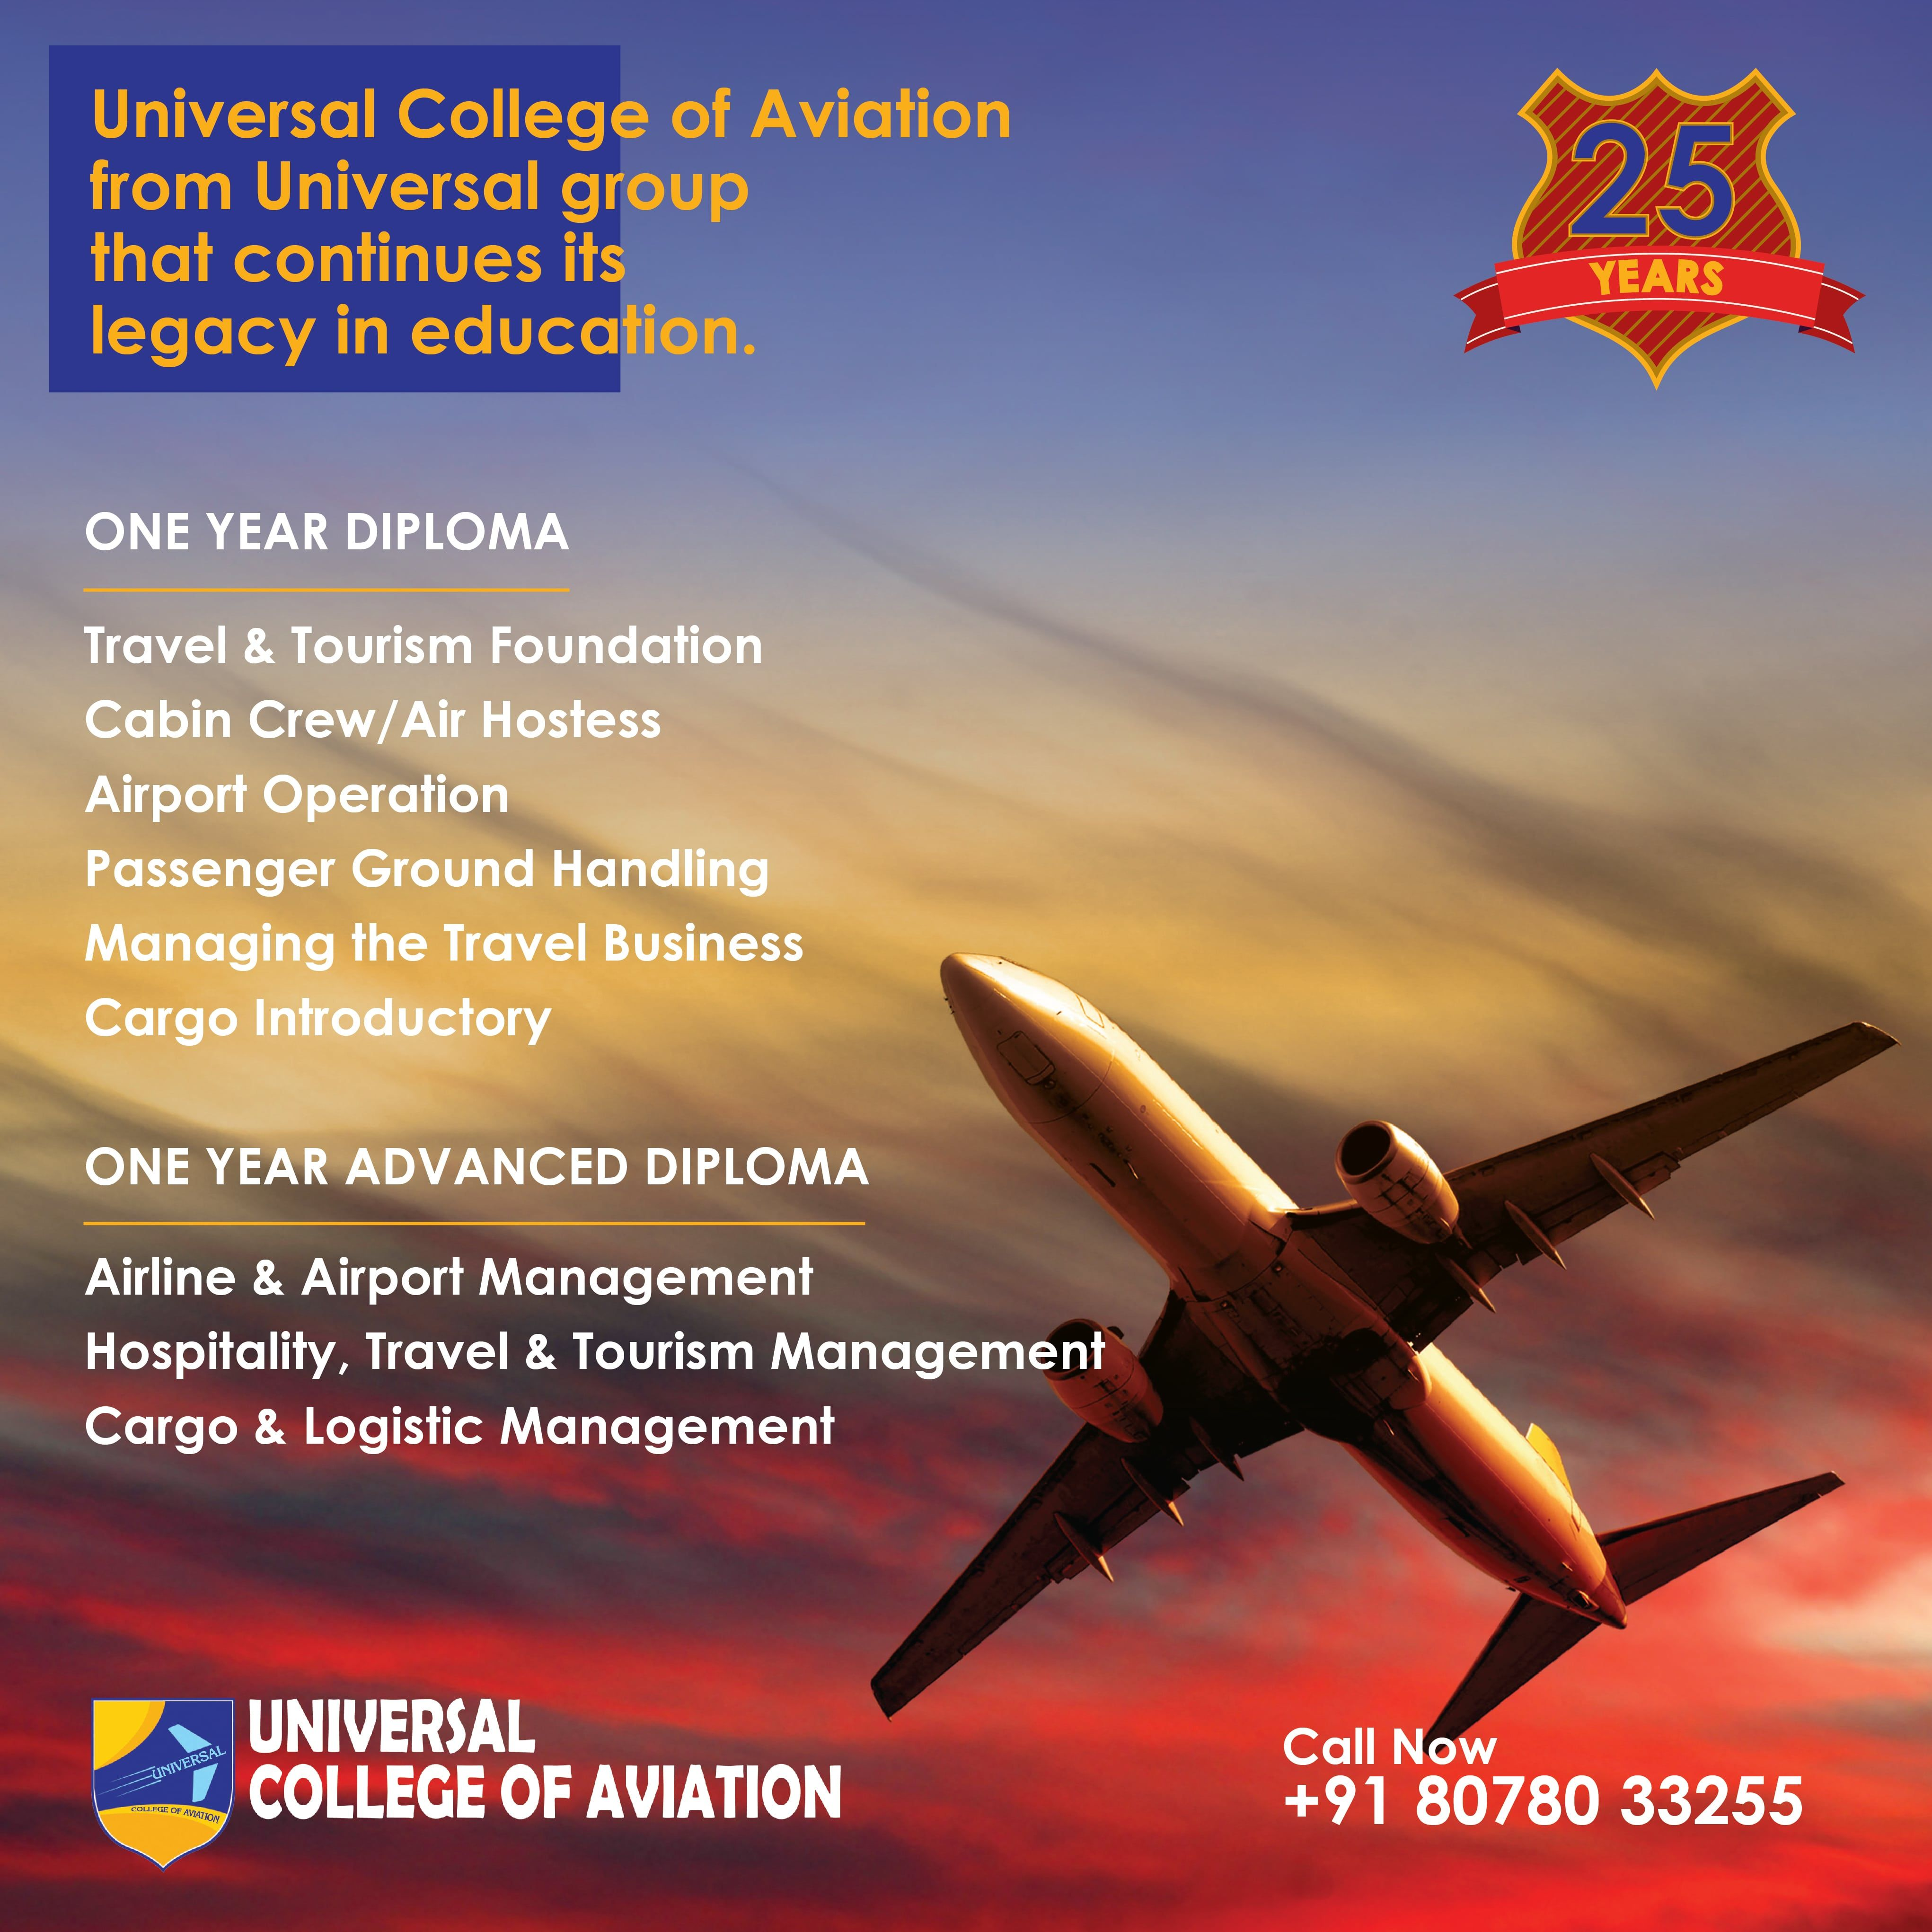 Universal College of Aviation is the best Aviation College